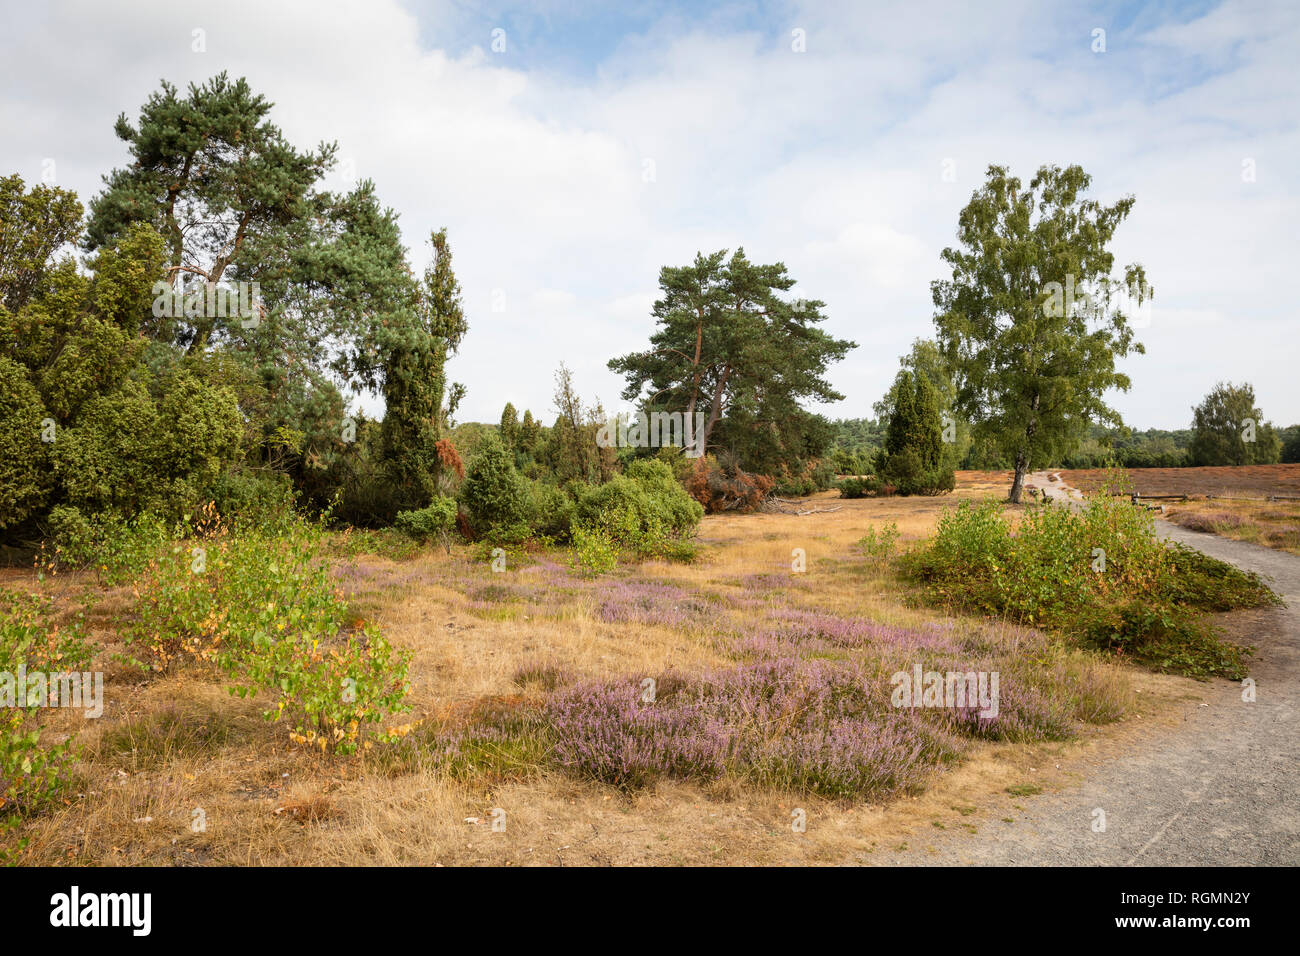 Germany, North Rhine-Westphalia, Muensterland, Westruper Heide, Hohe Mark Nature Park - Stock Image